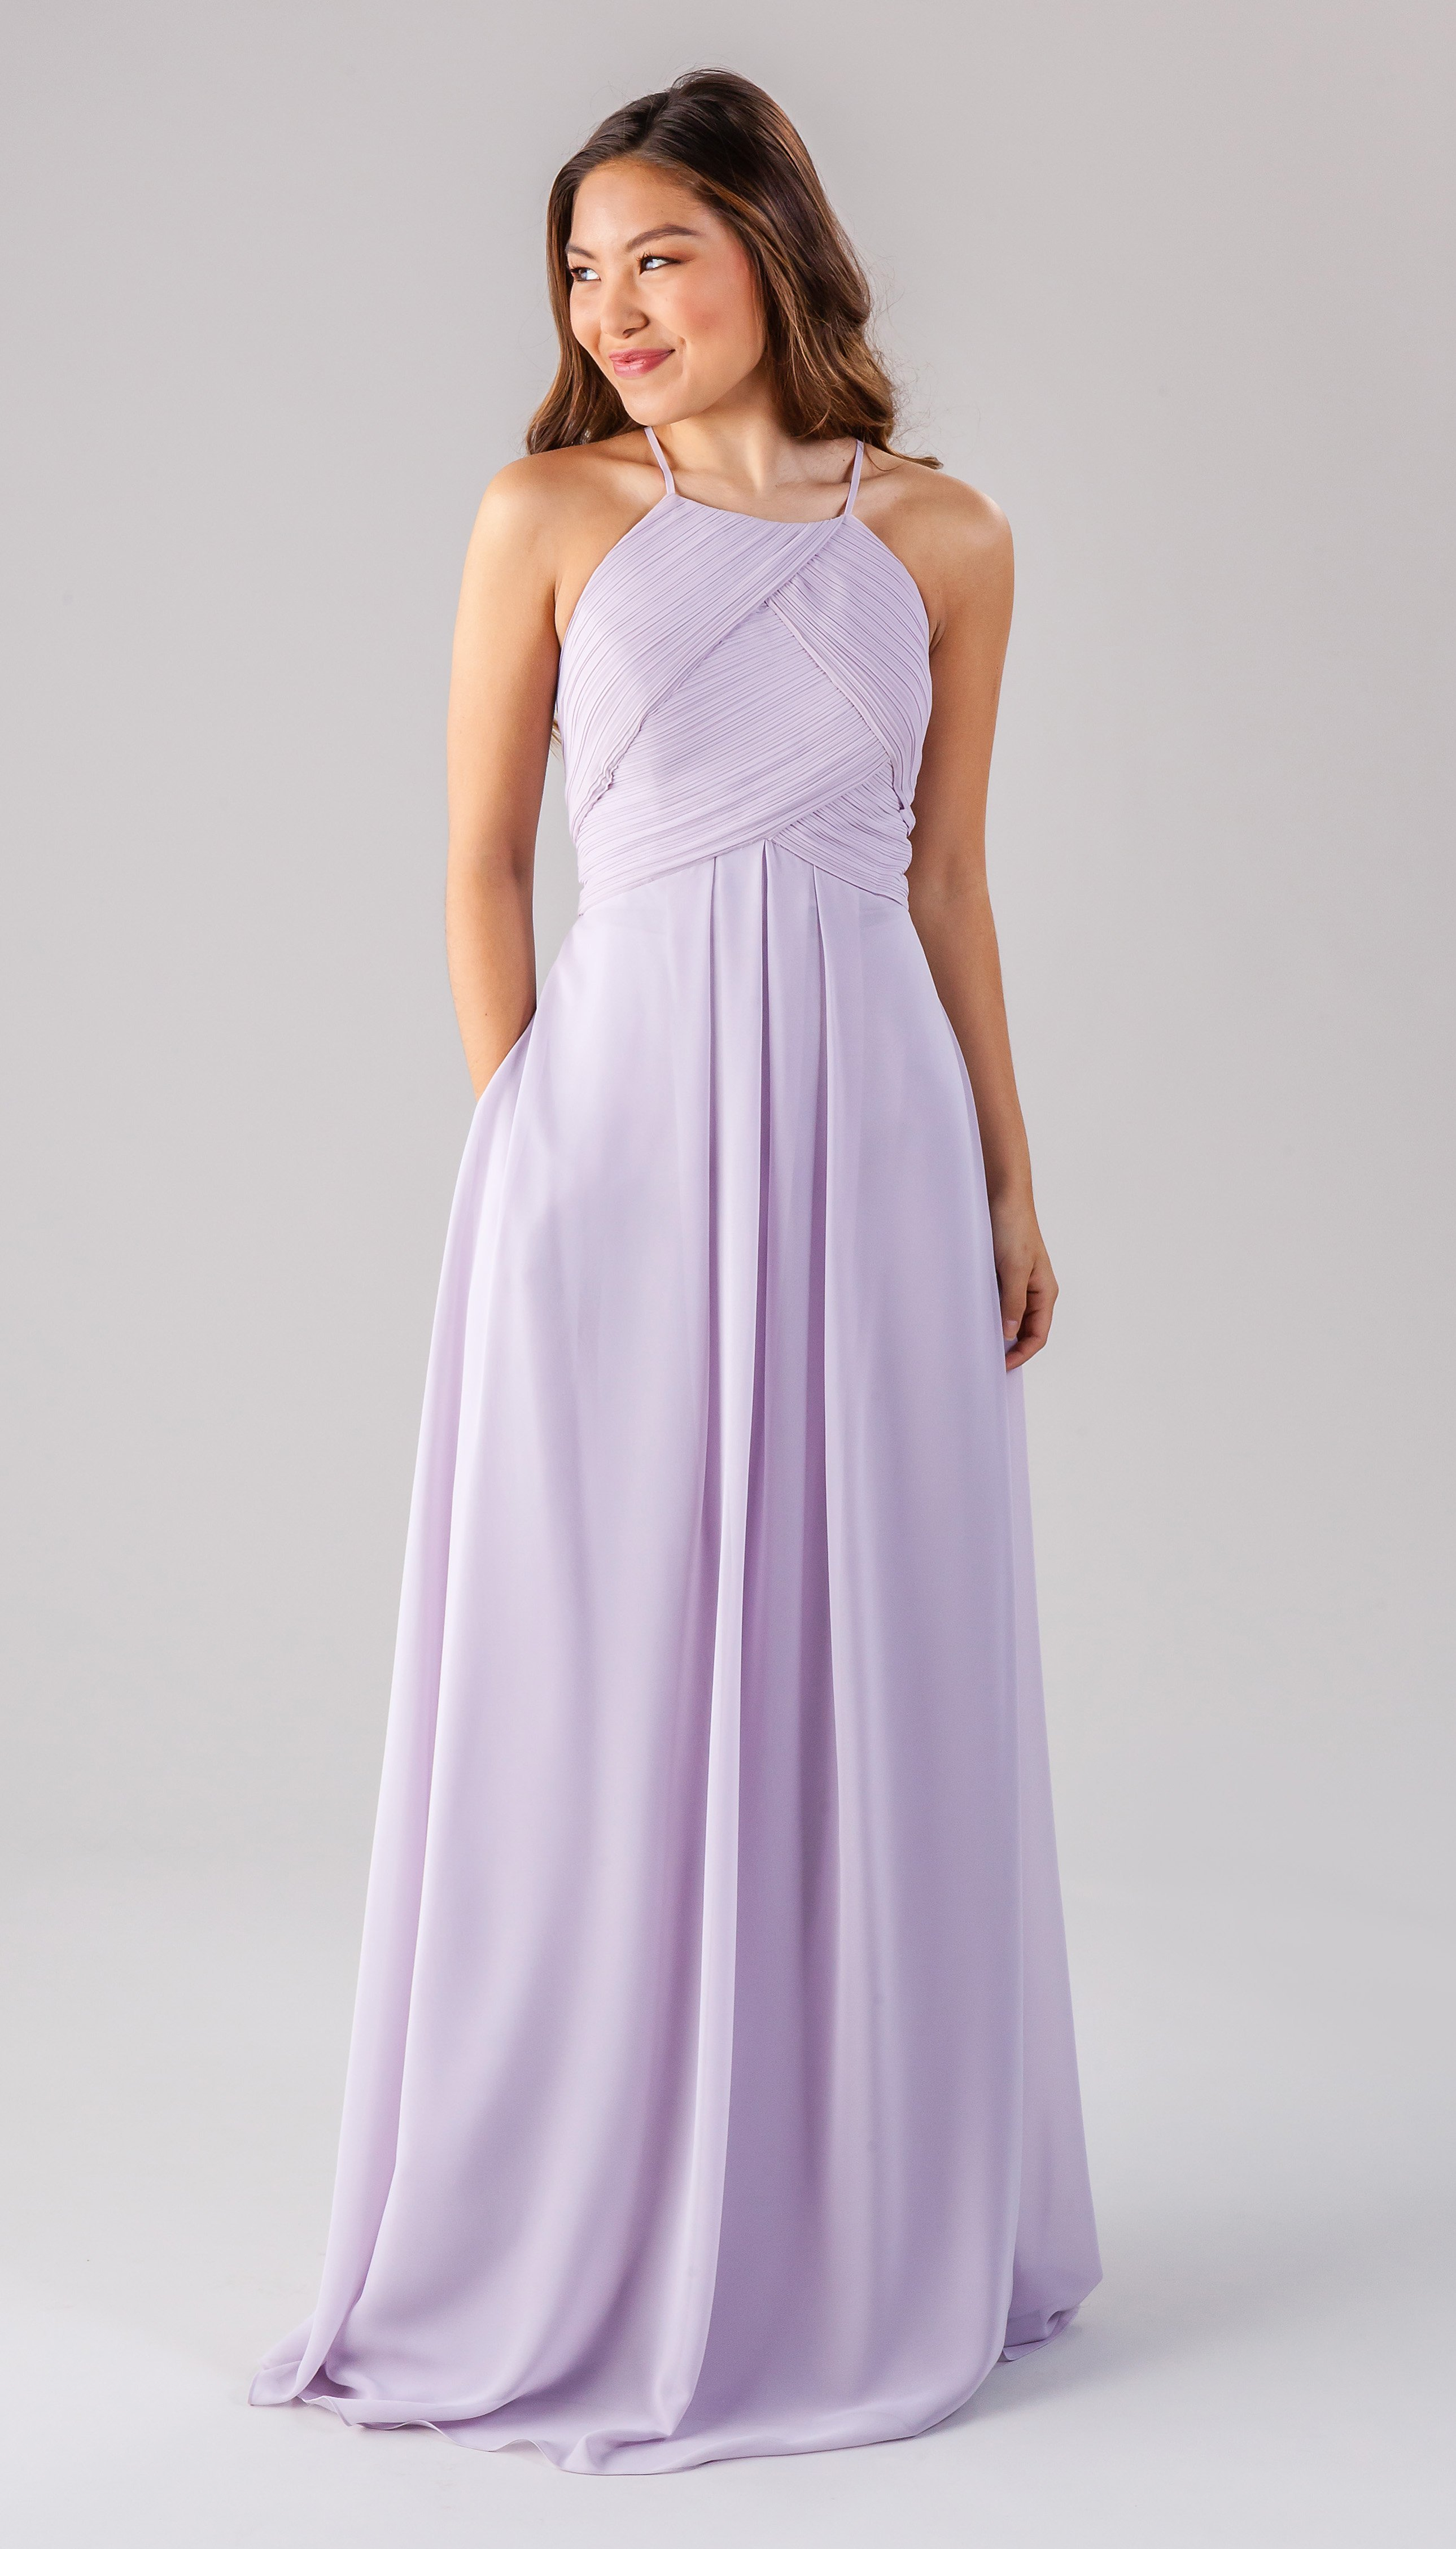 Milly high neck bridesmaid dresses unique bridesmaid dresses high neck bridesmaid dresses empire waist unique bridesmaid dresses milly kennedy ombrellifo Gallery